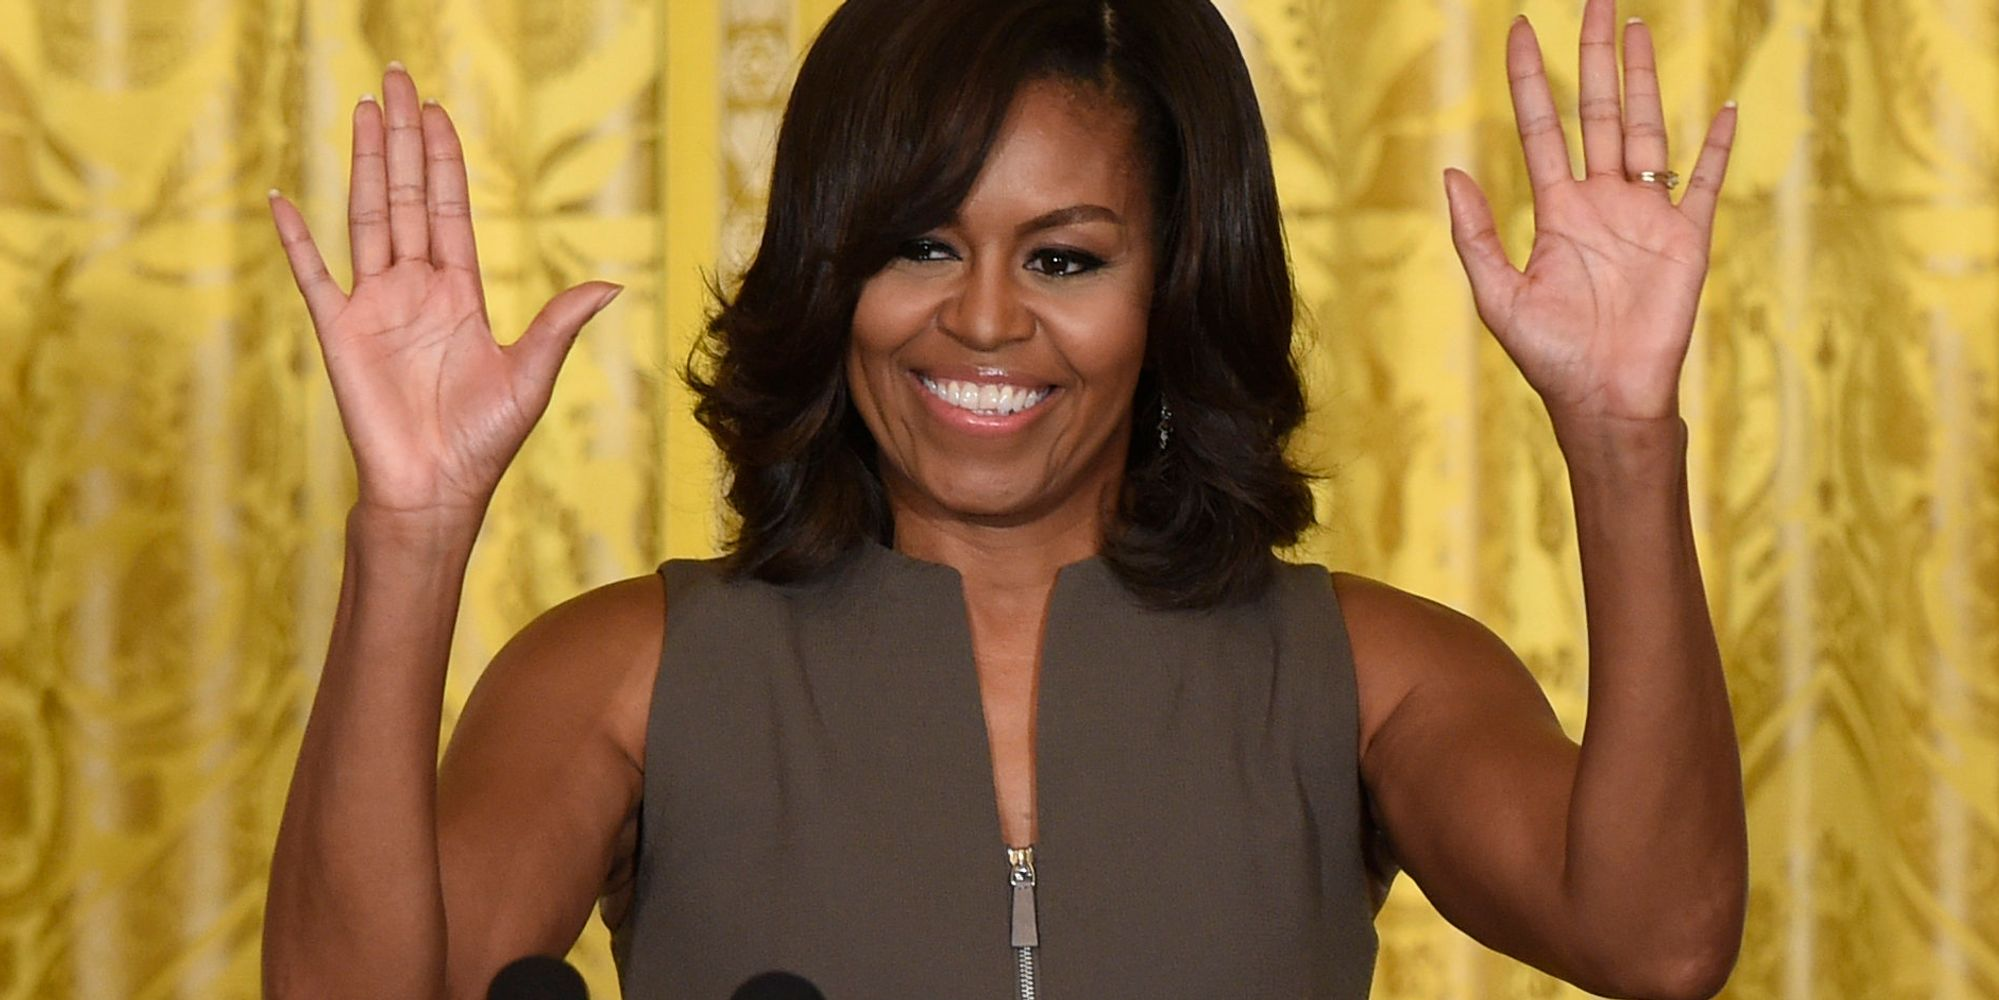 Michelle Obama Has A New Favorite Color | The Huffington Post